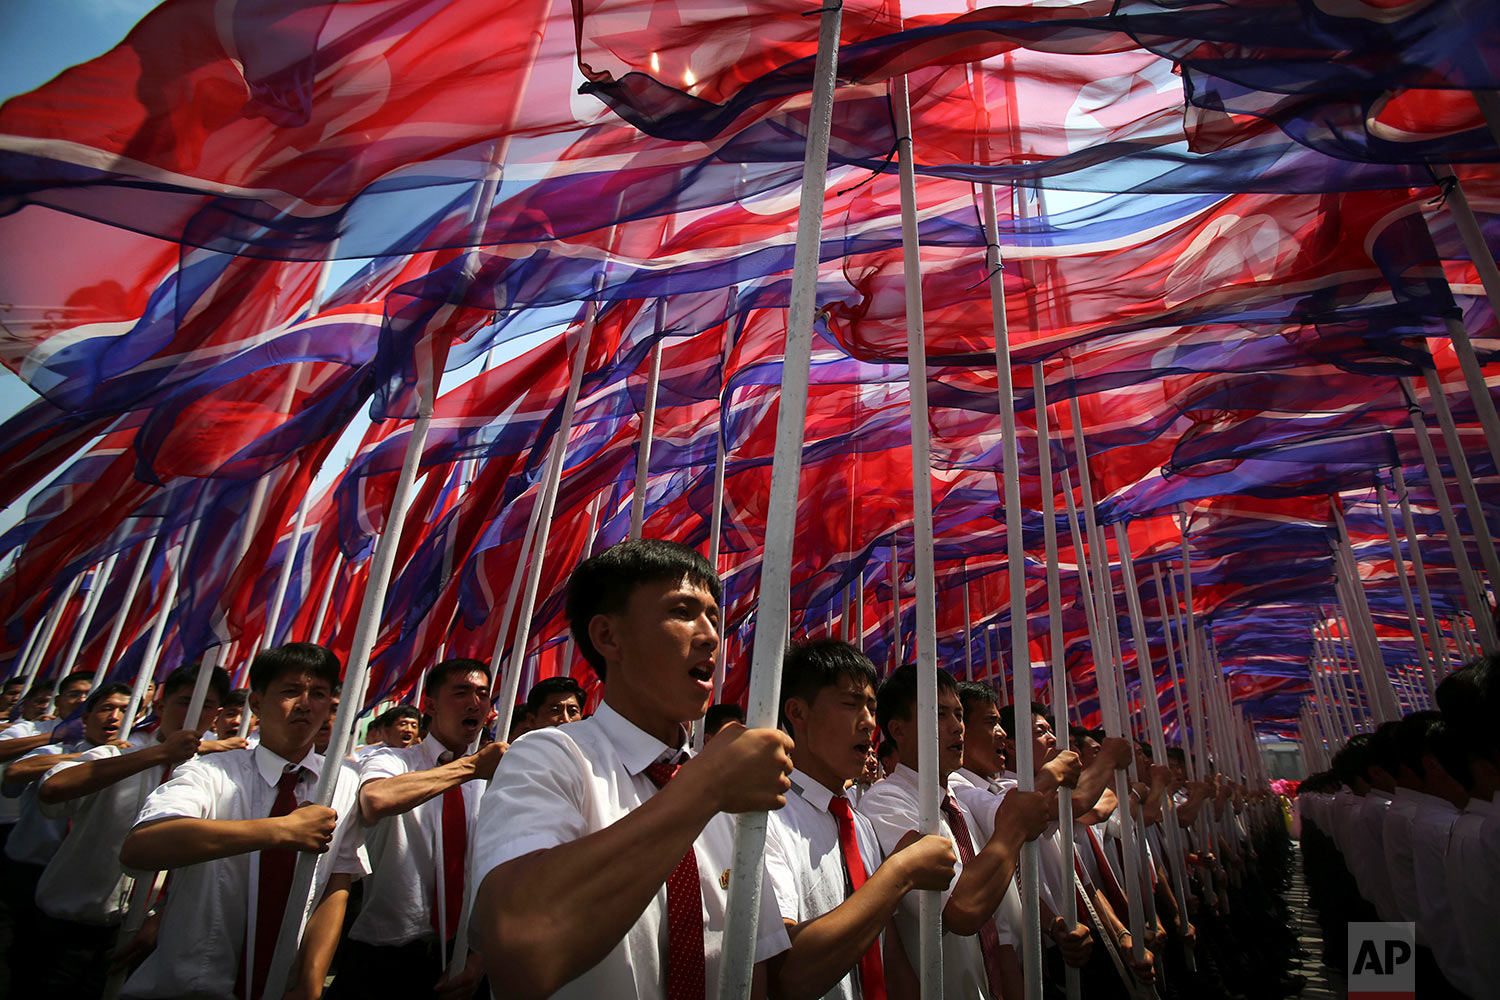 Men carrying North Korean flags march in a mass military parade in Pyongyang, North Korea, celebrating the 60th anniversary of the Korean War armistice on July 27, 2013. (AP Photo/Wong Maye-E)